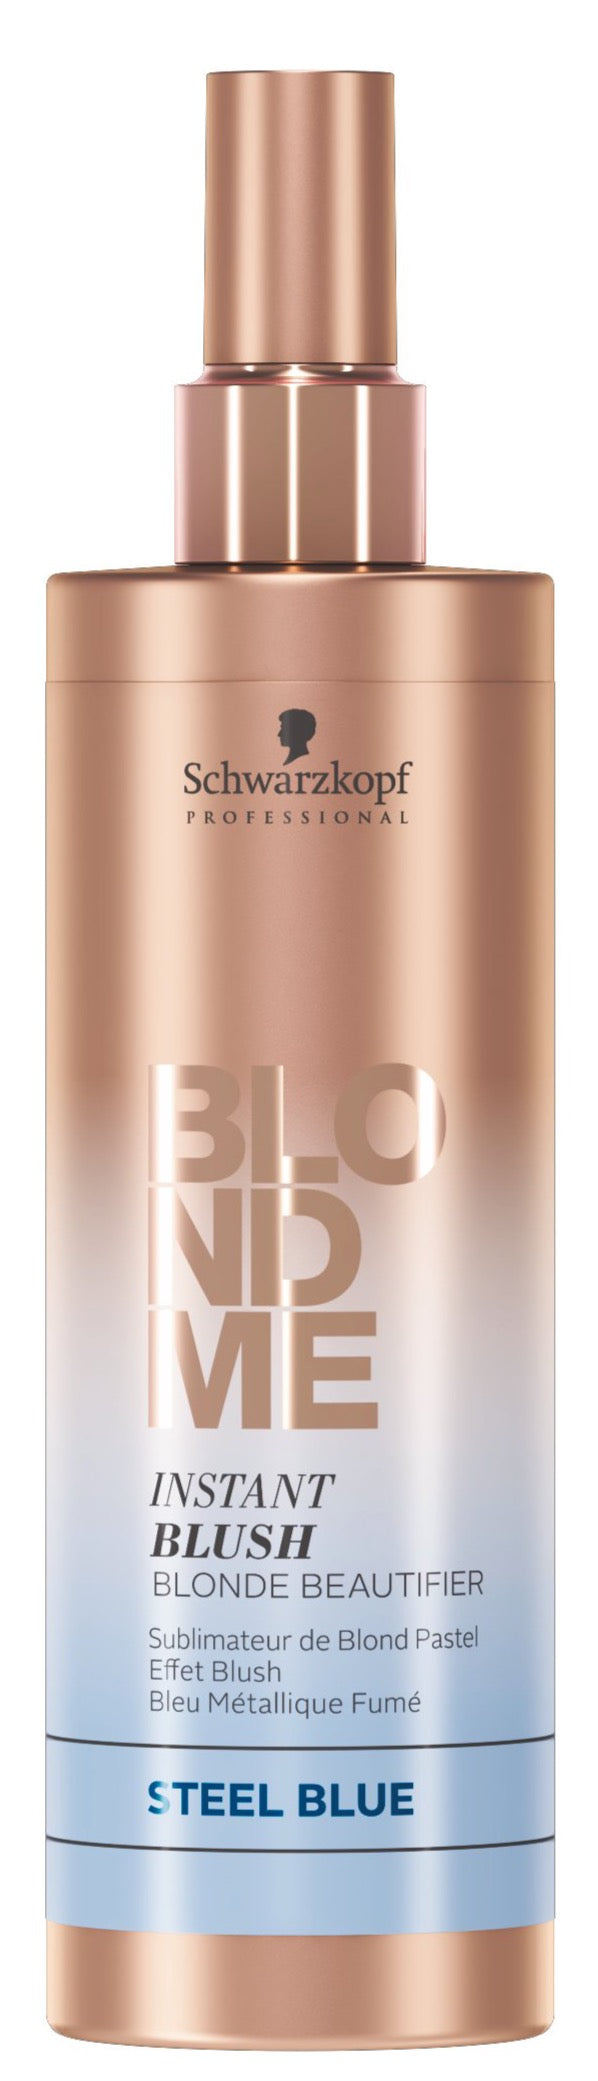 BlondMe Instant Blush Spray Steel Blue